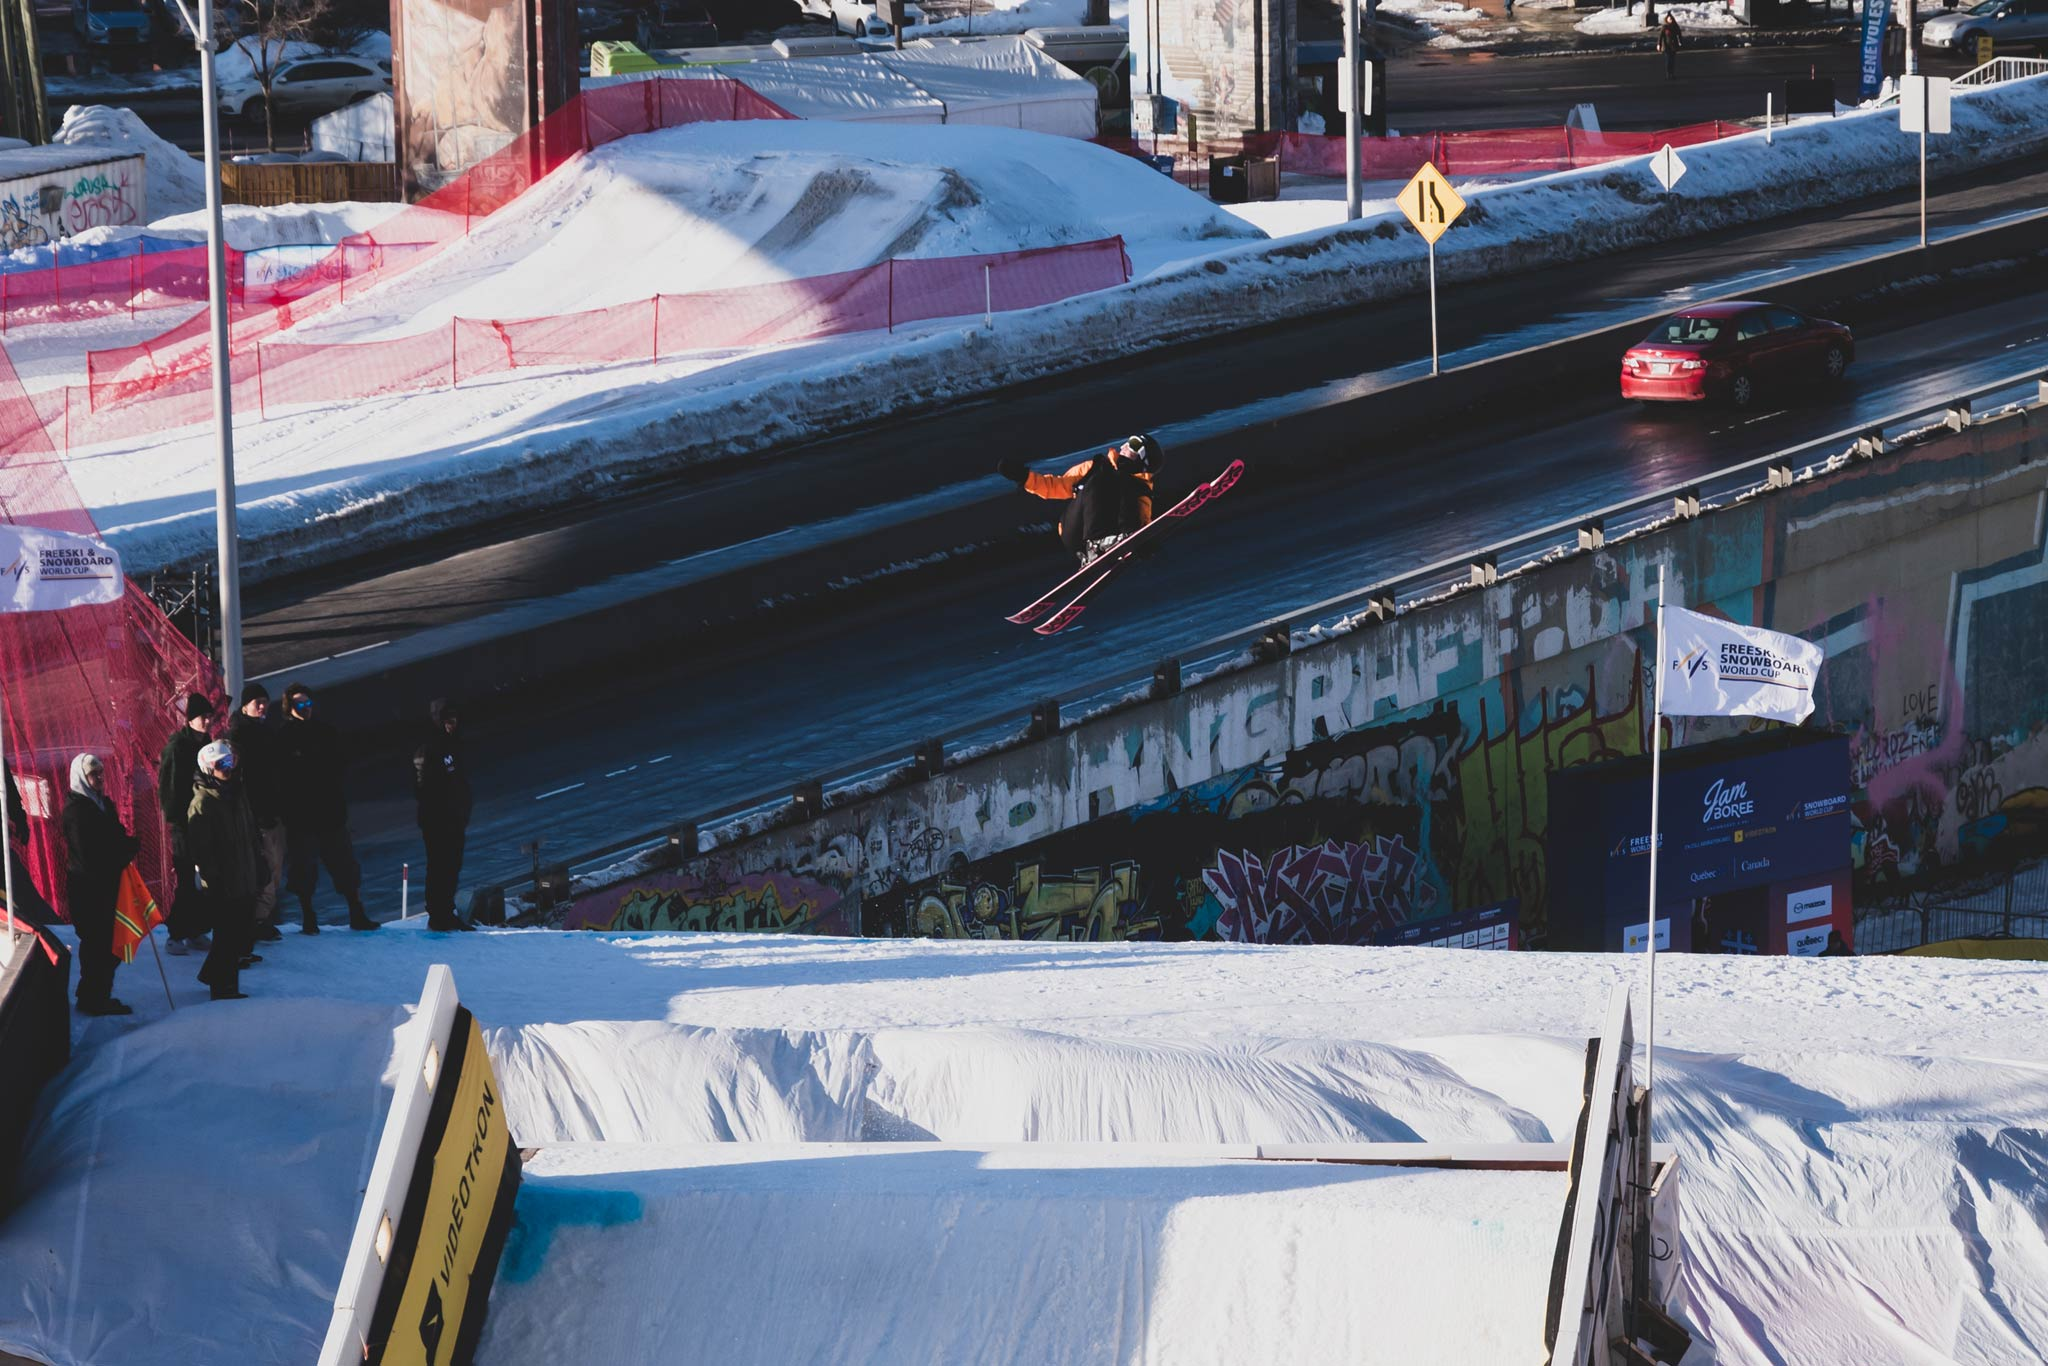 Der unnatural Trick von Kea: Right Bio 7 Safety - Foto: FIS Freestyle